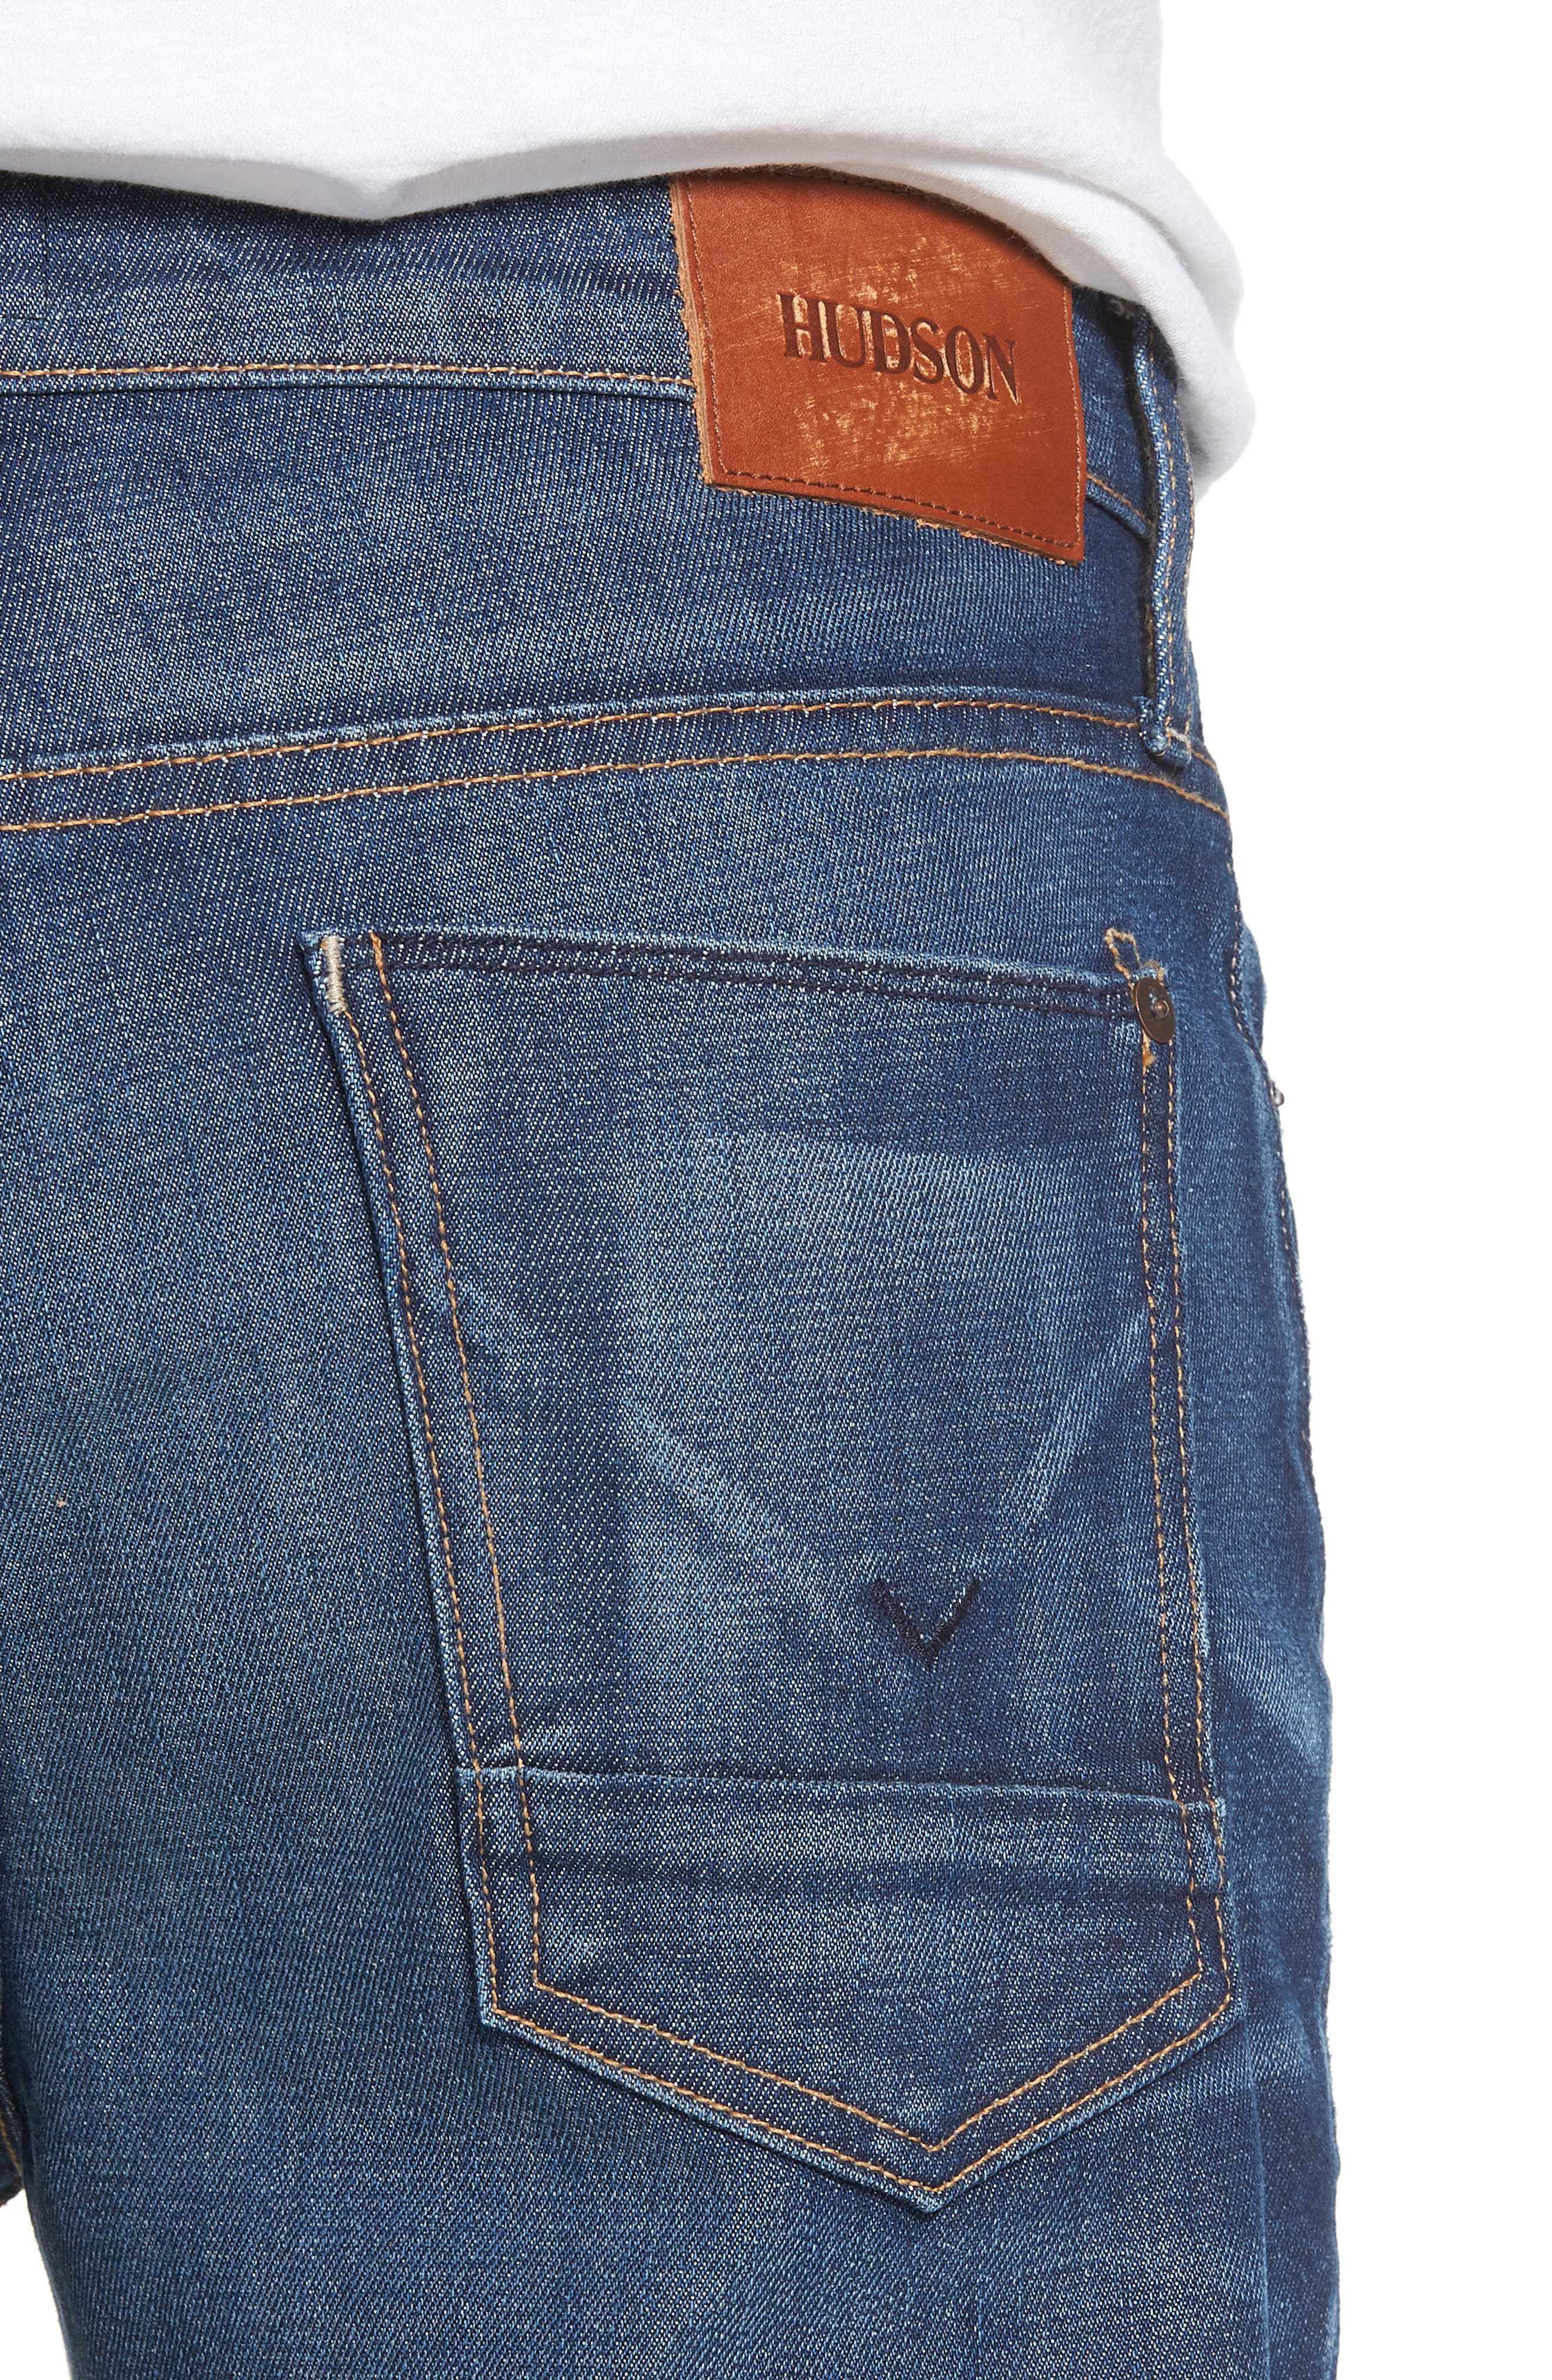 Axl Skinny Fit Jeans,                             Alternate thumbnail 4, color,                             425